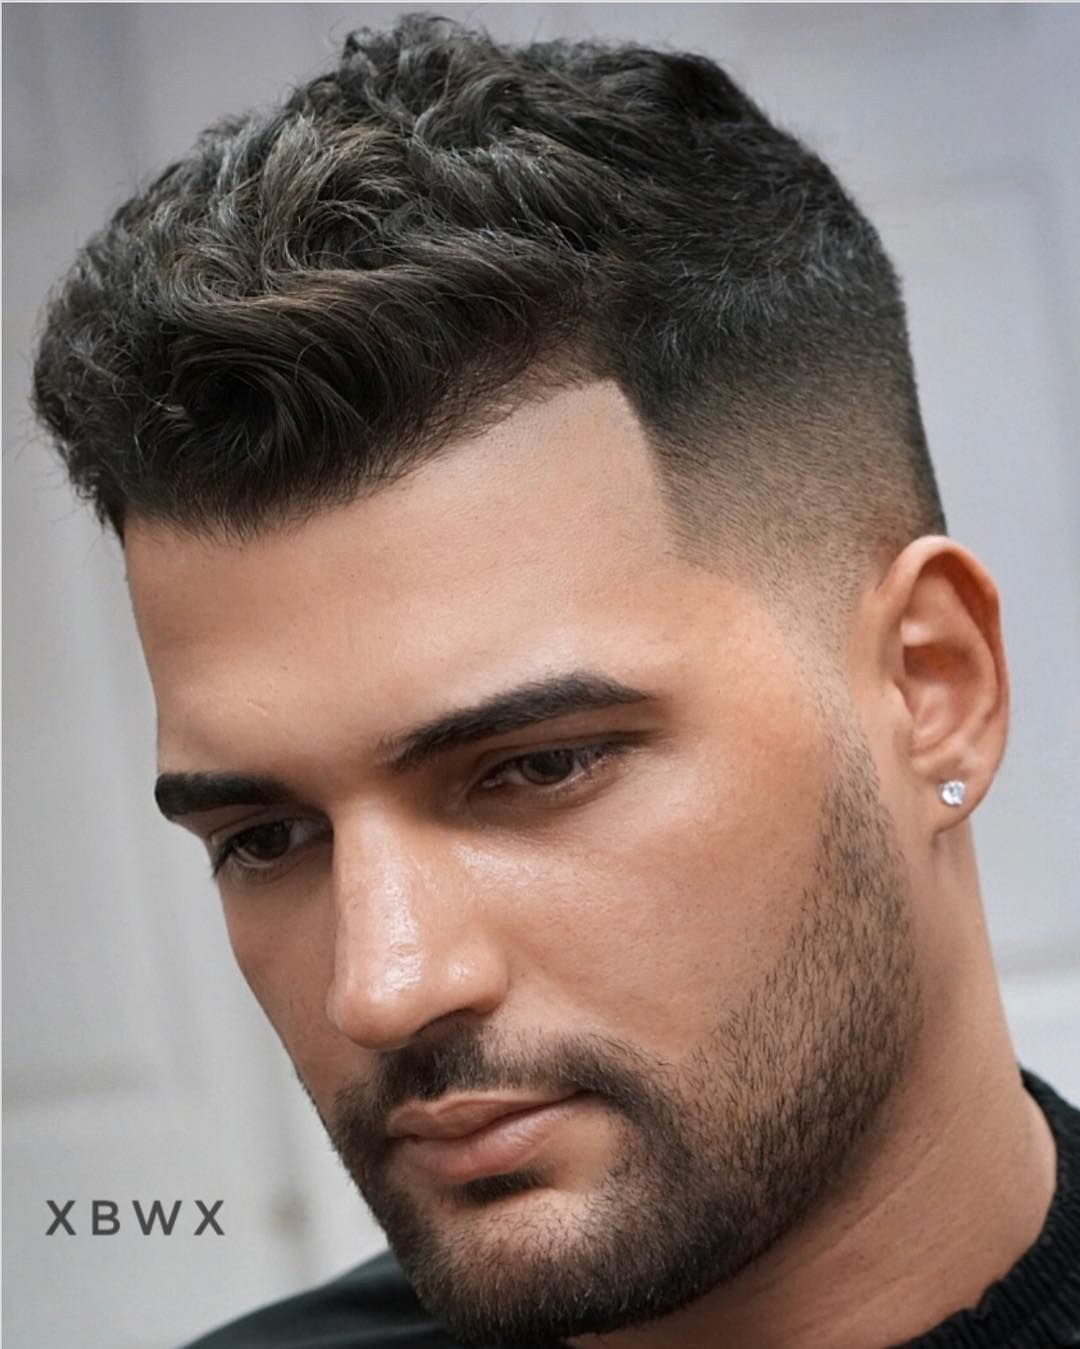 49+ Best hairstyle for oblong face male inspirations